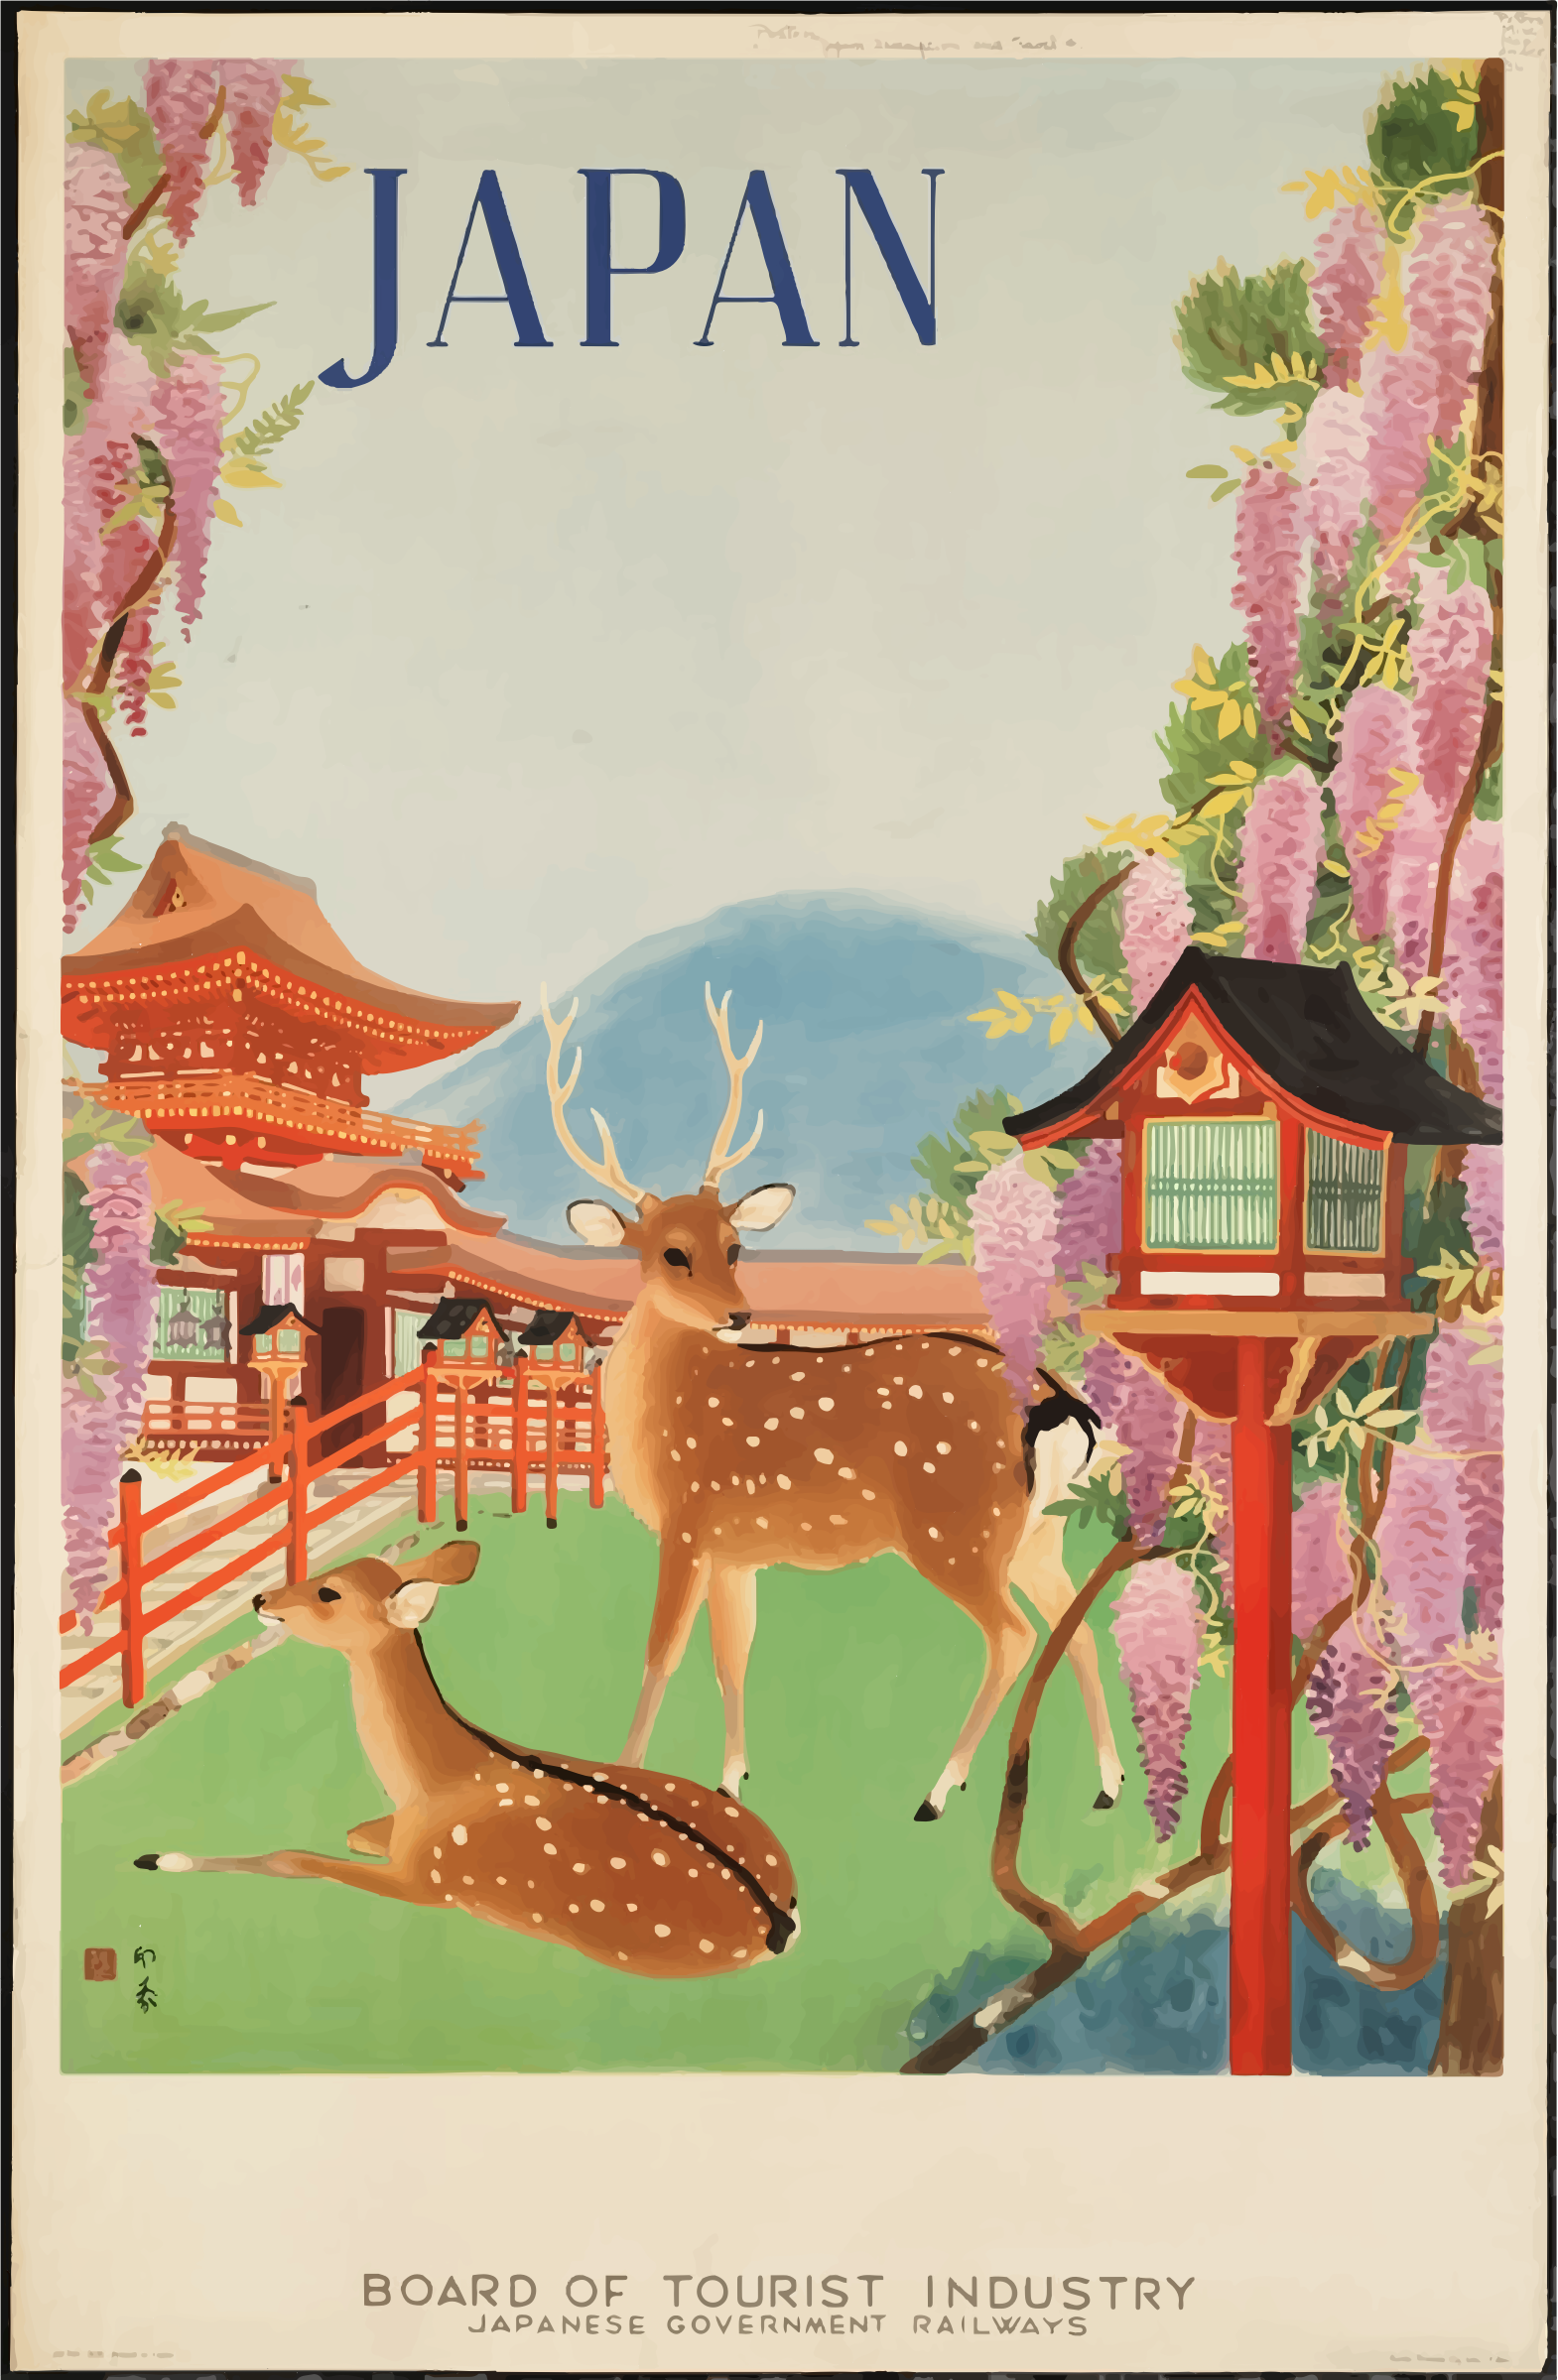 Vintage Travel Poster 1930s Japan by GDJ